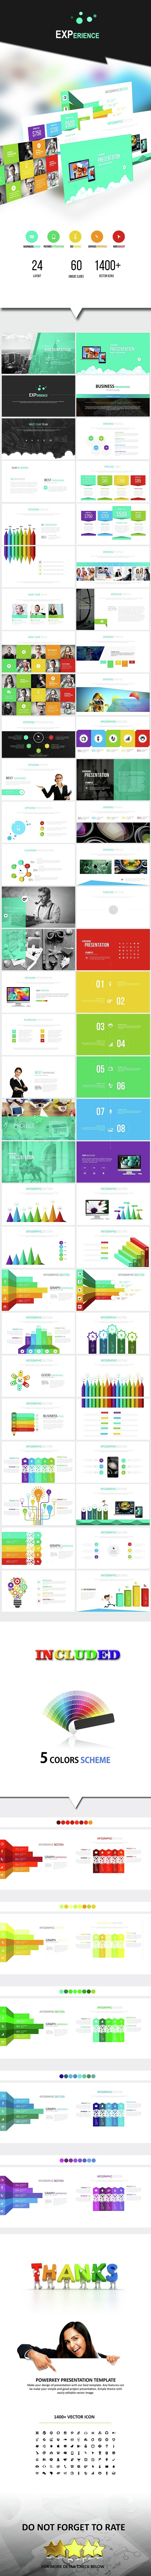 EXPERIENCE - Powerpoint Business Presentation